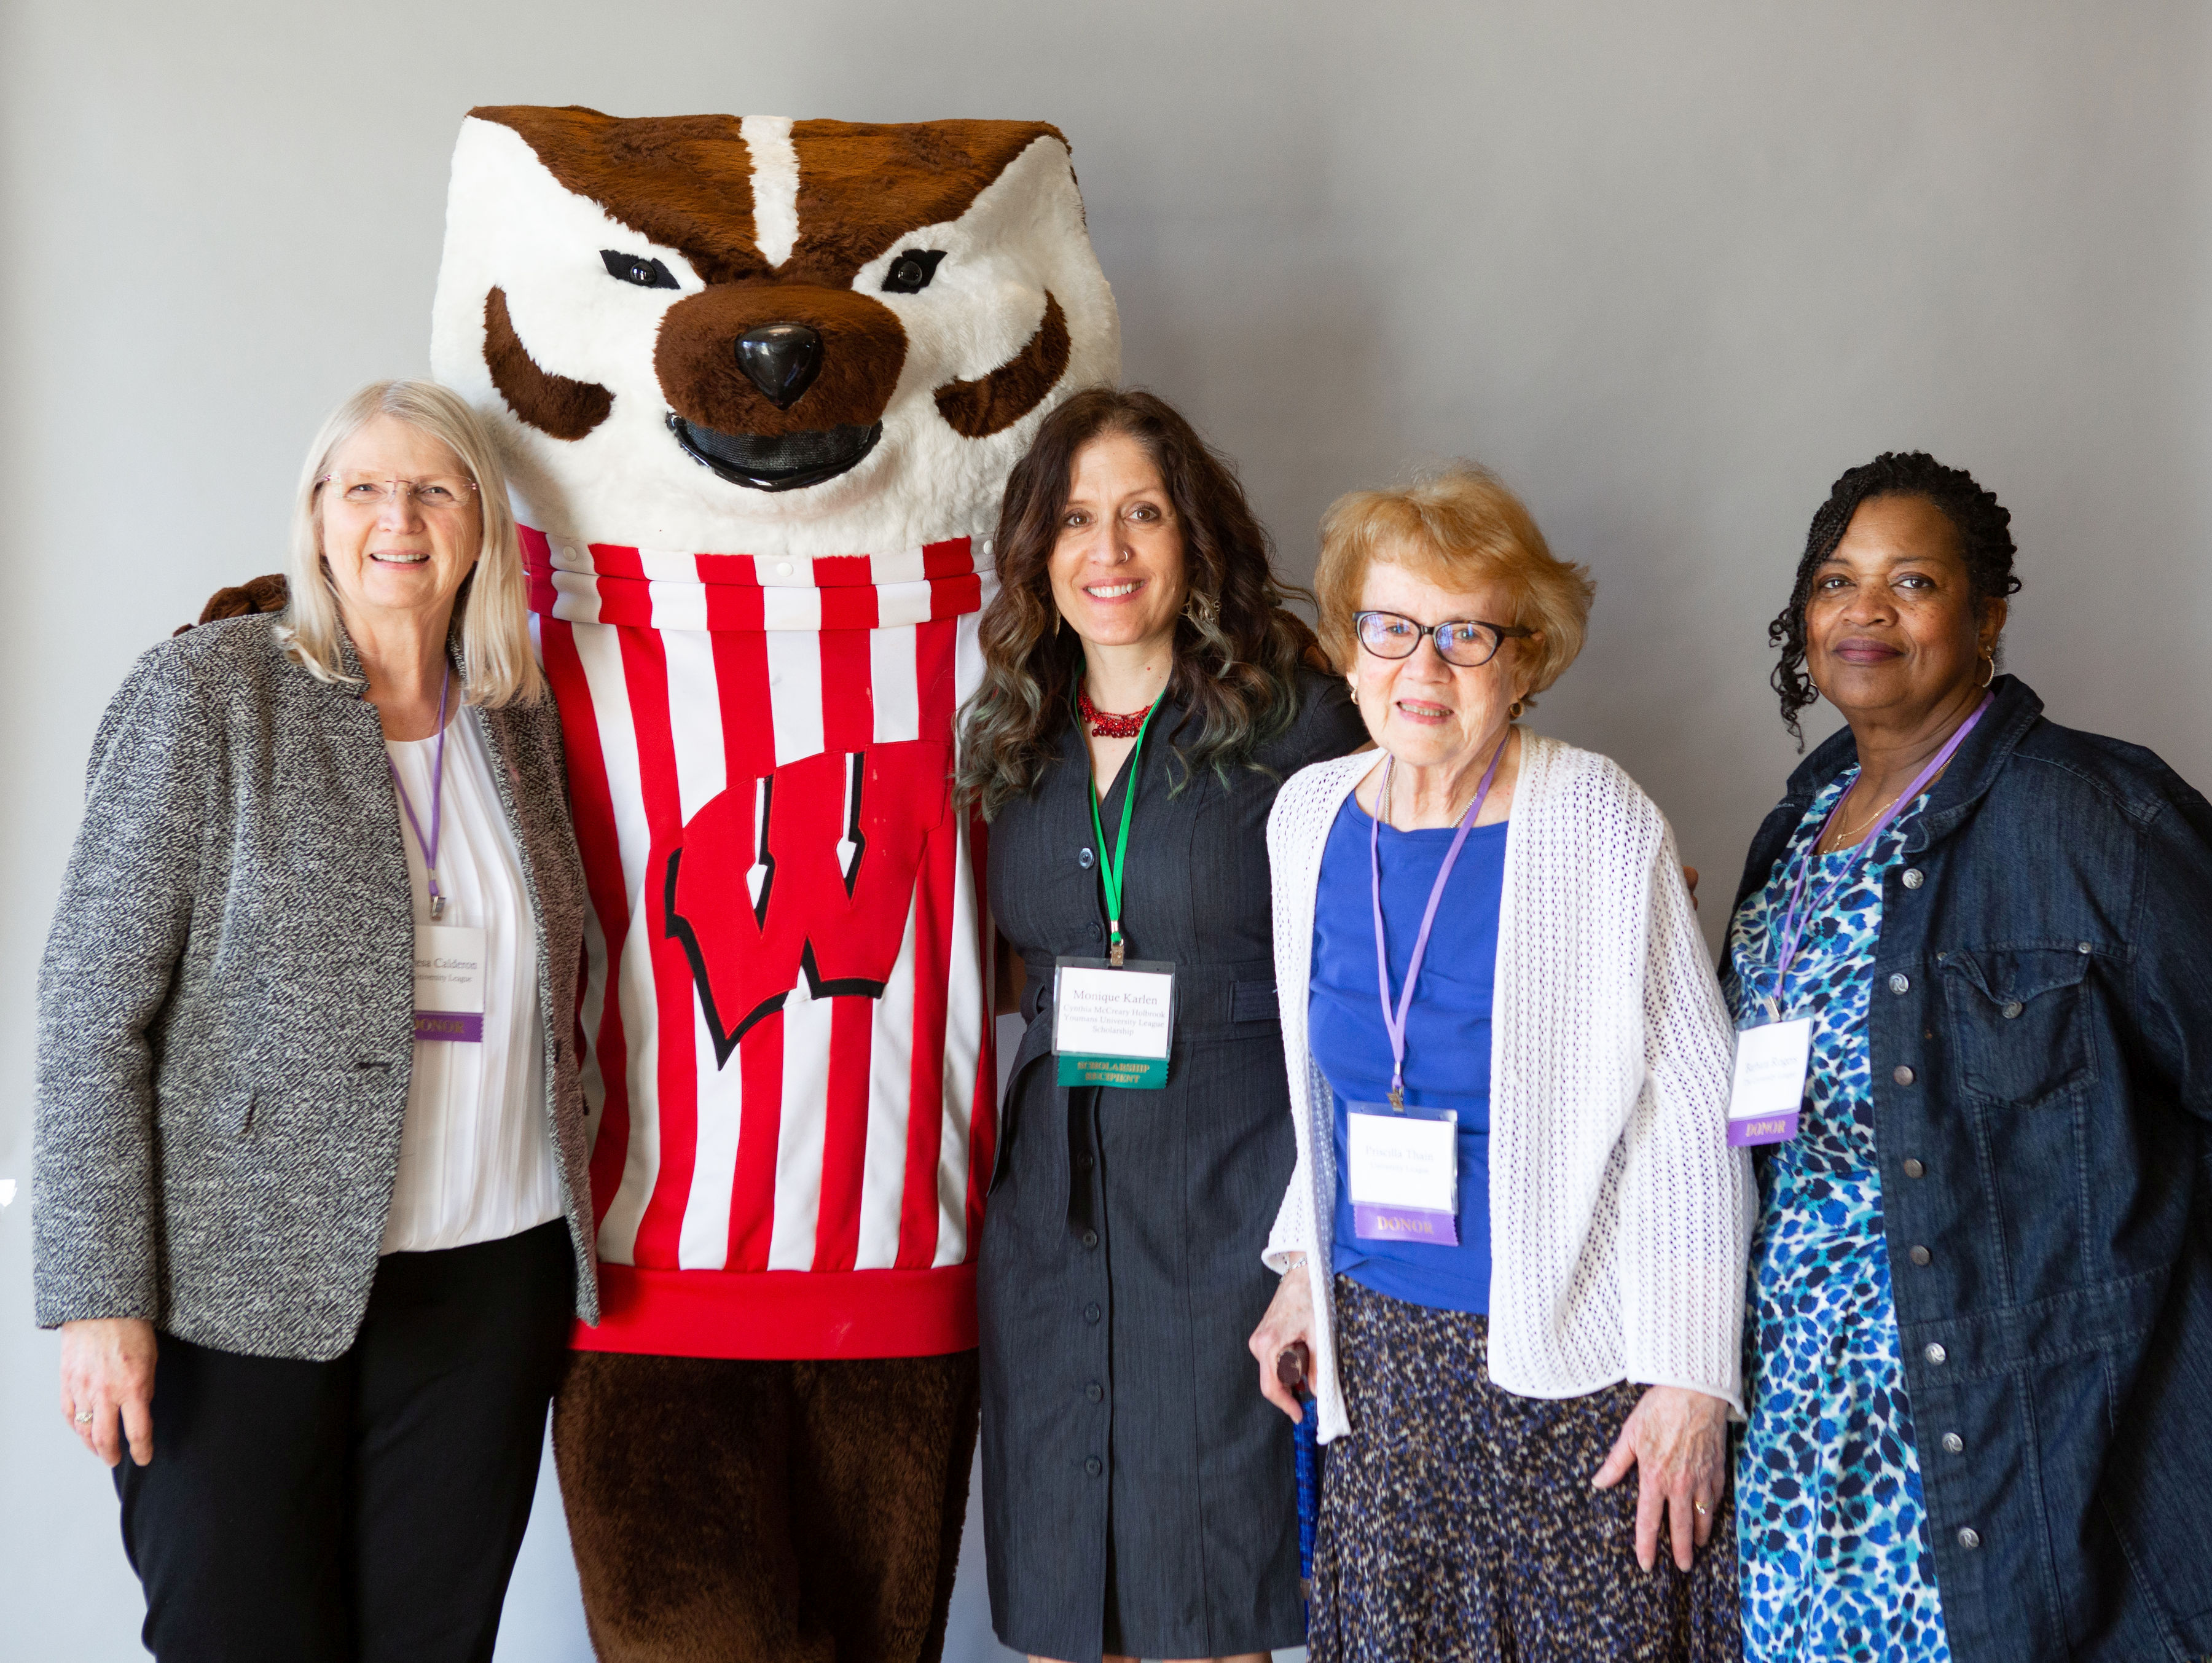 monique karlen and youmans university league donors with bucky